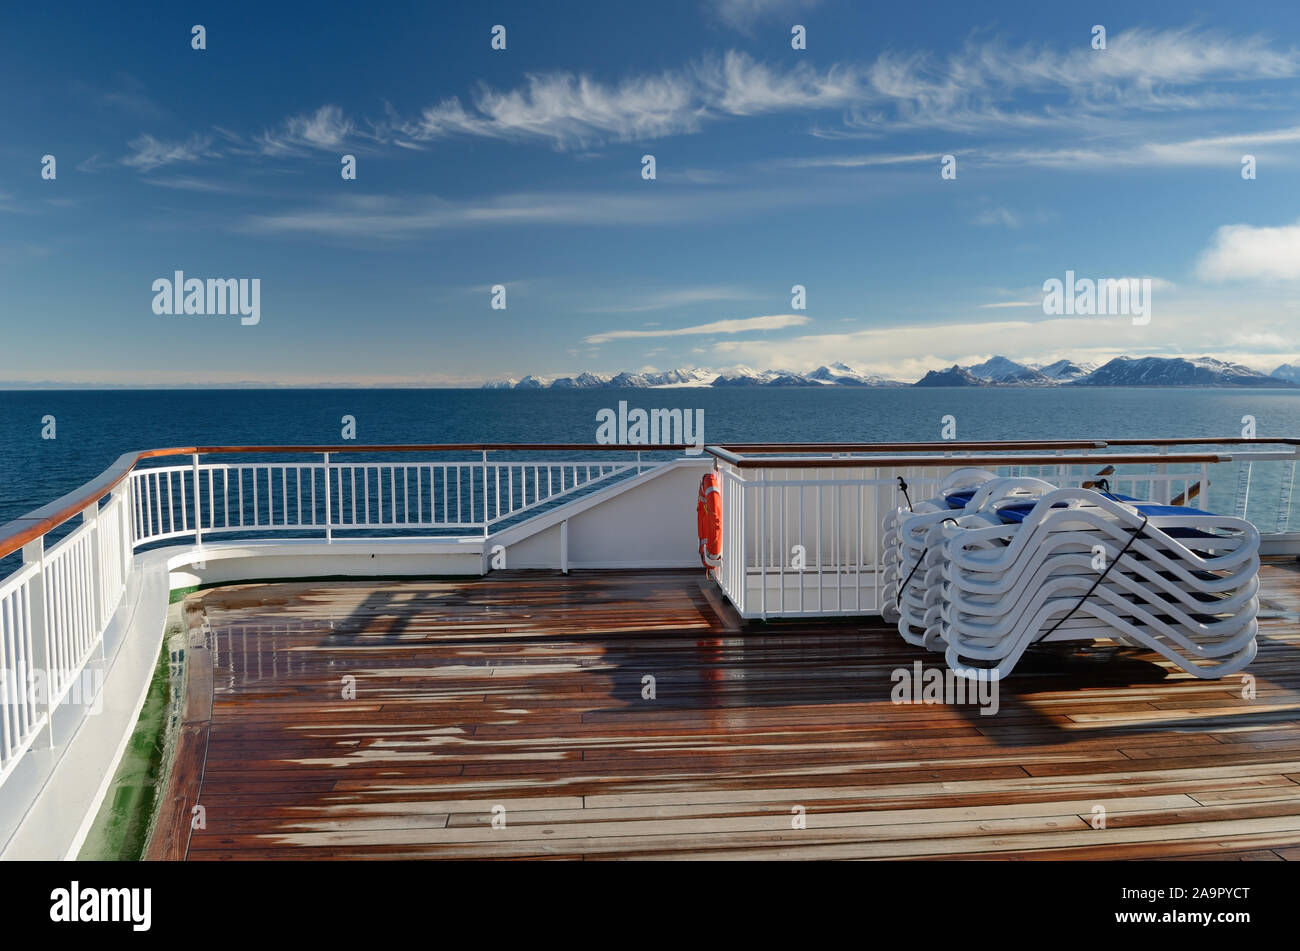 The coastline of Spitsbergen, seen from a cruise ship sailing into Kongsfjorden. Stock Photo